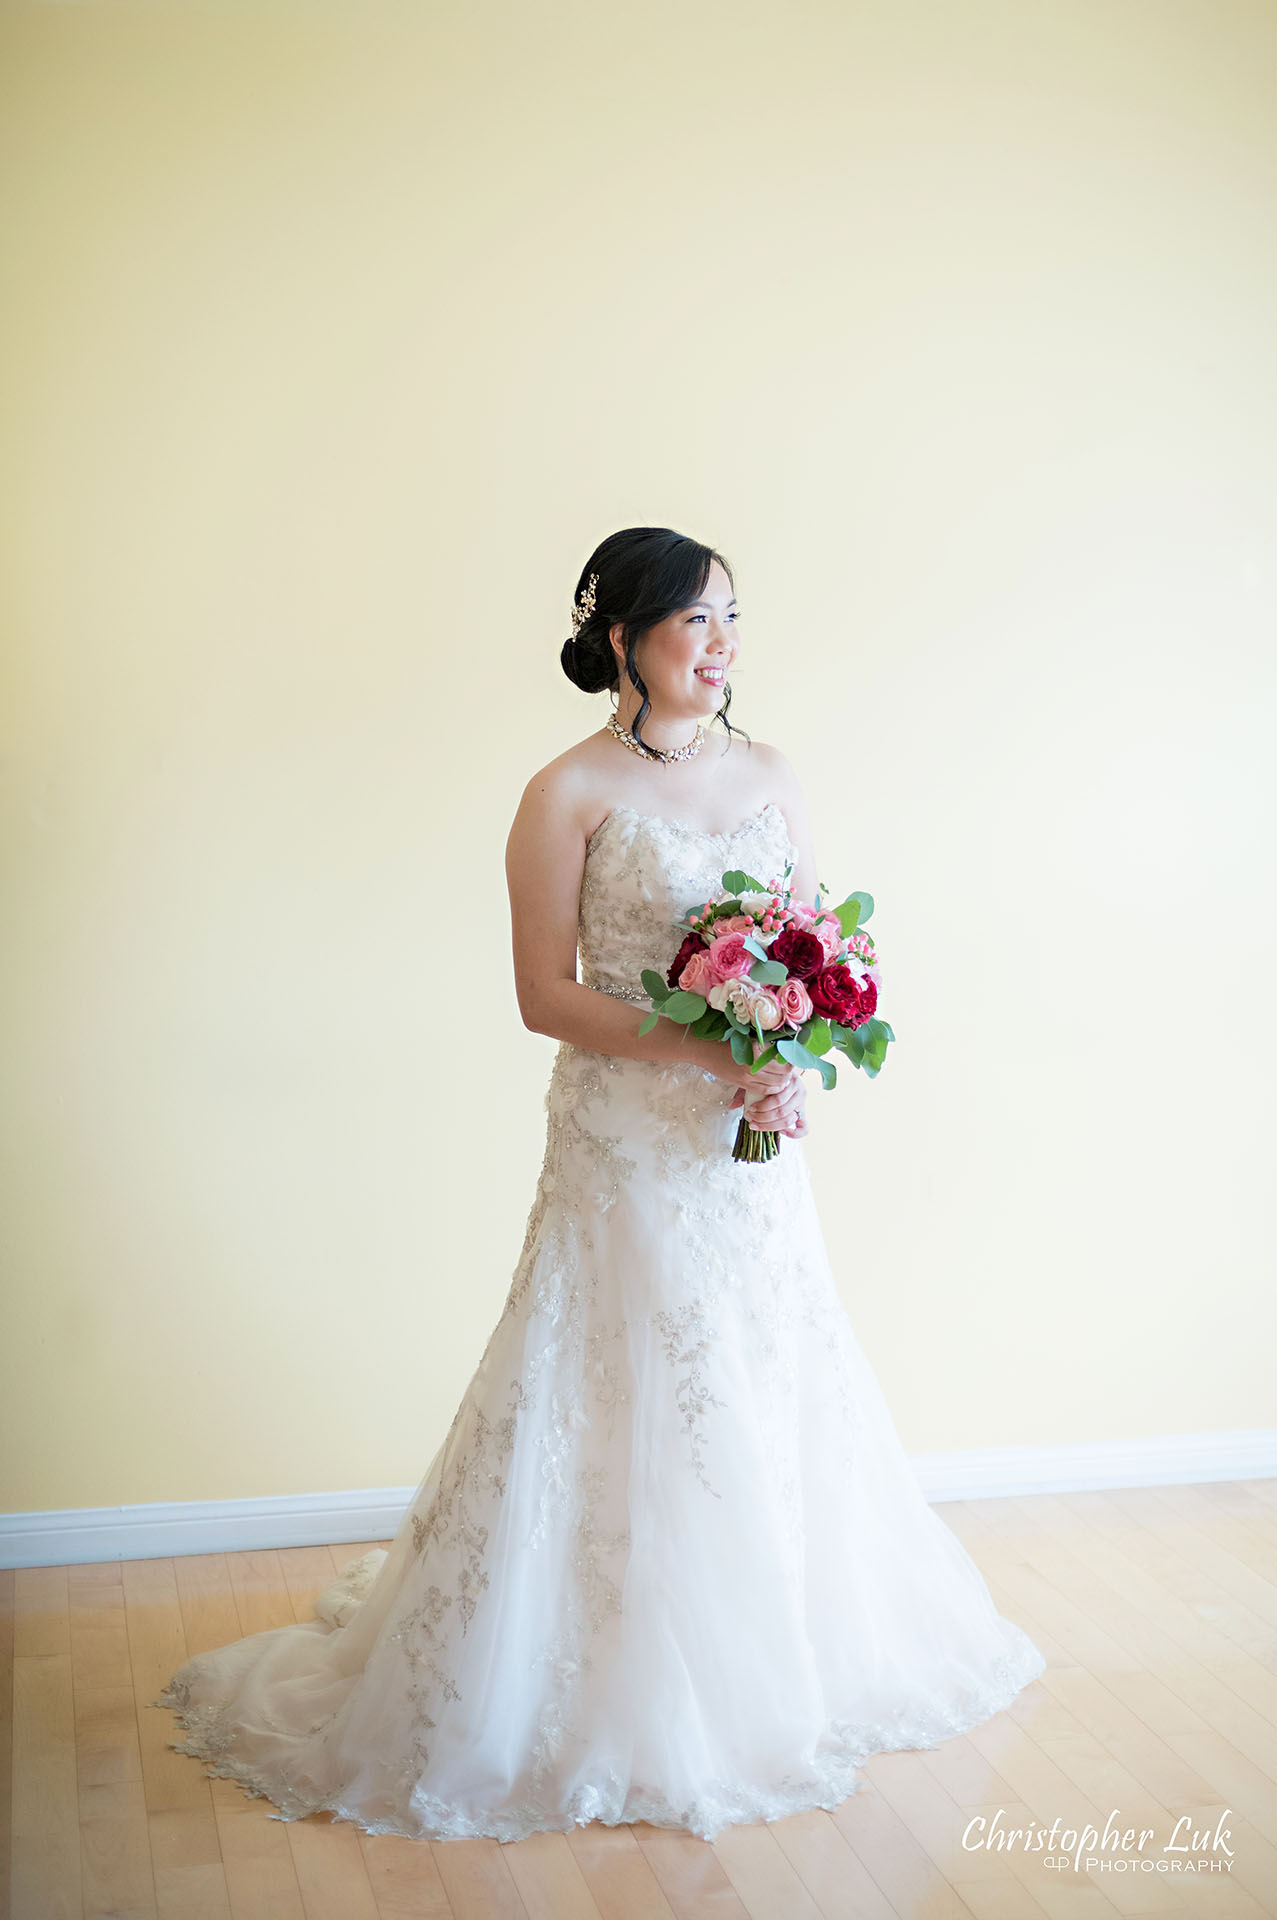 Christopher Luk Toronto Wedding Photographer Bridle Trail Baptist Church Unionville Main Street Crystal Fountain Event Venue Flower Bell by Masami Baby's Breath Little White Flowers Hemp Bridal Bride Bouquet Pink Red Modern English Miniature Tea Rose Getting Ready Full Portrait